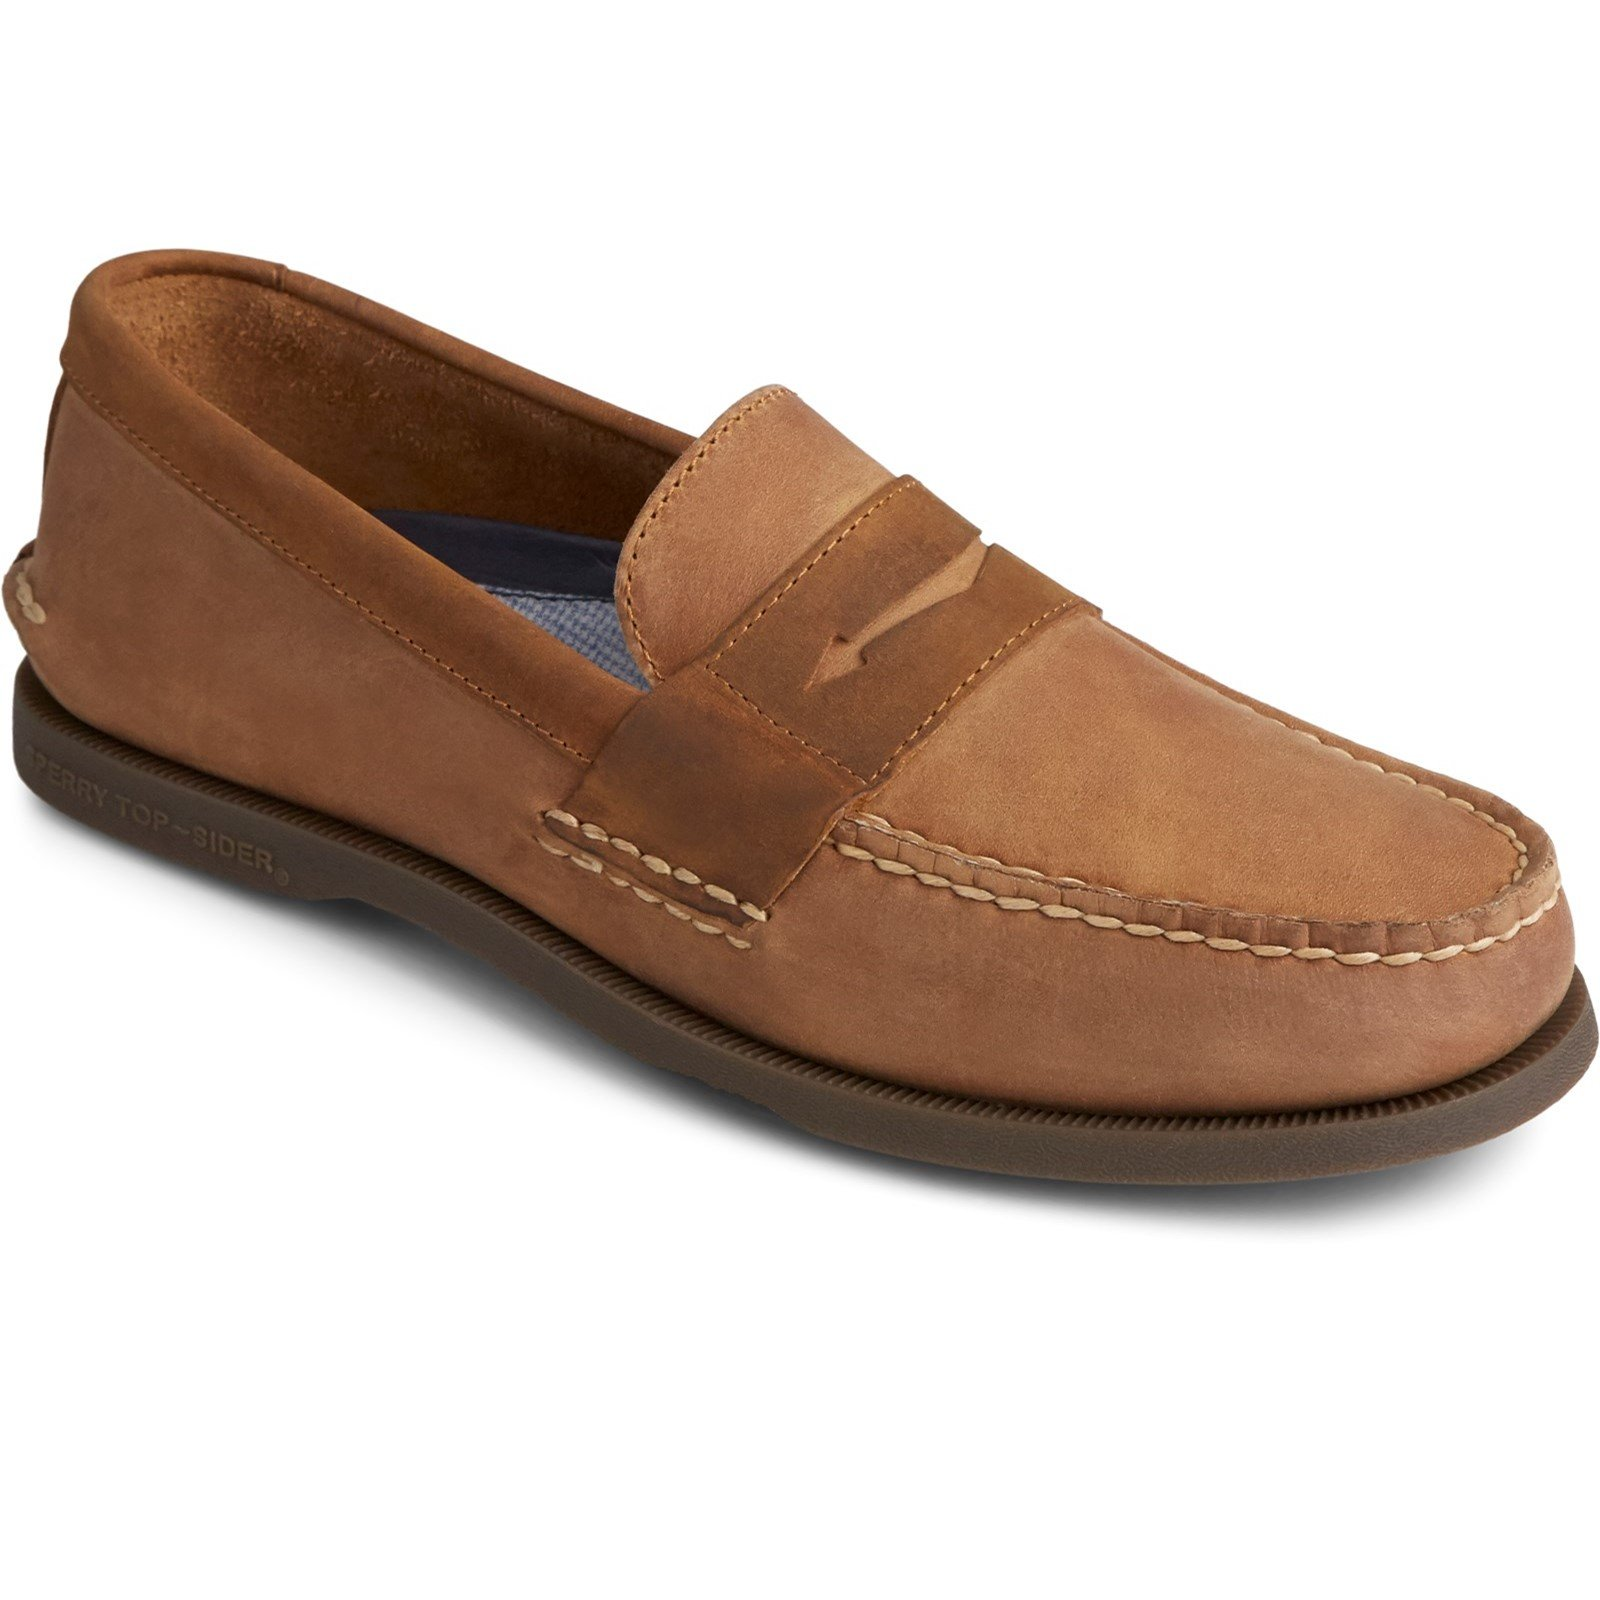 Sperry Men's Authentic Original Penny Loafer Various Colours 32438 - Sahara/Sonora 9